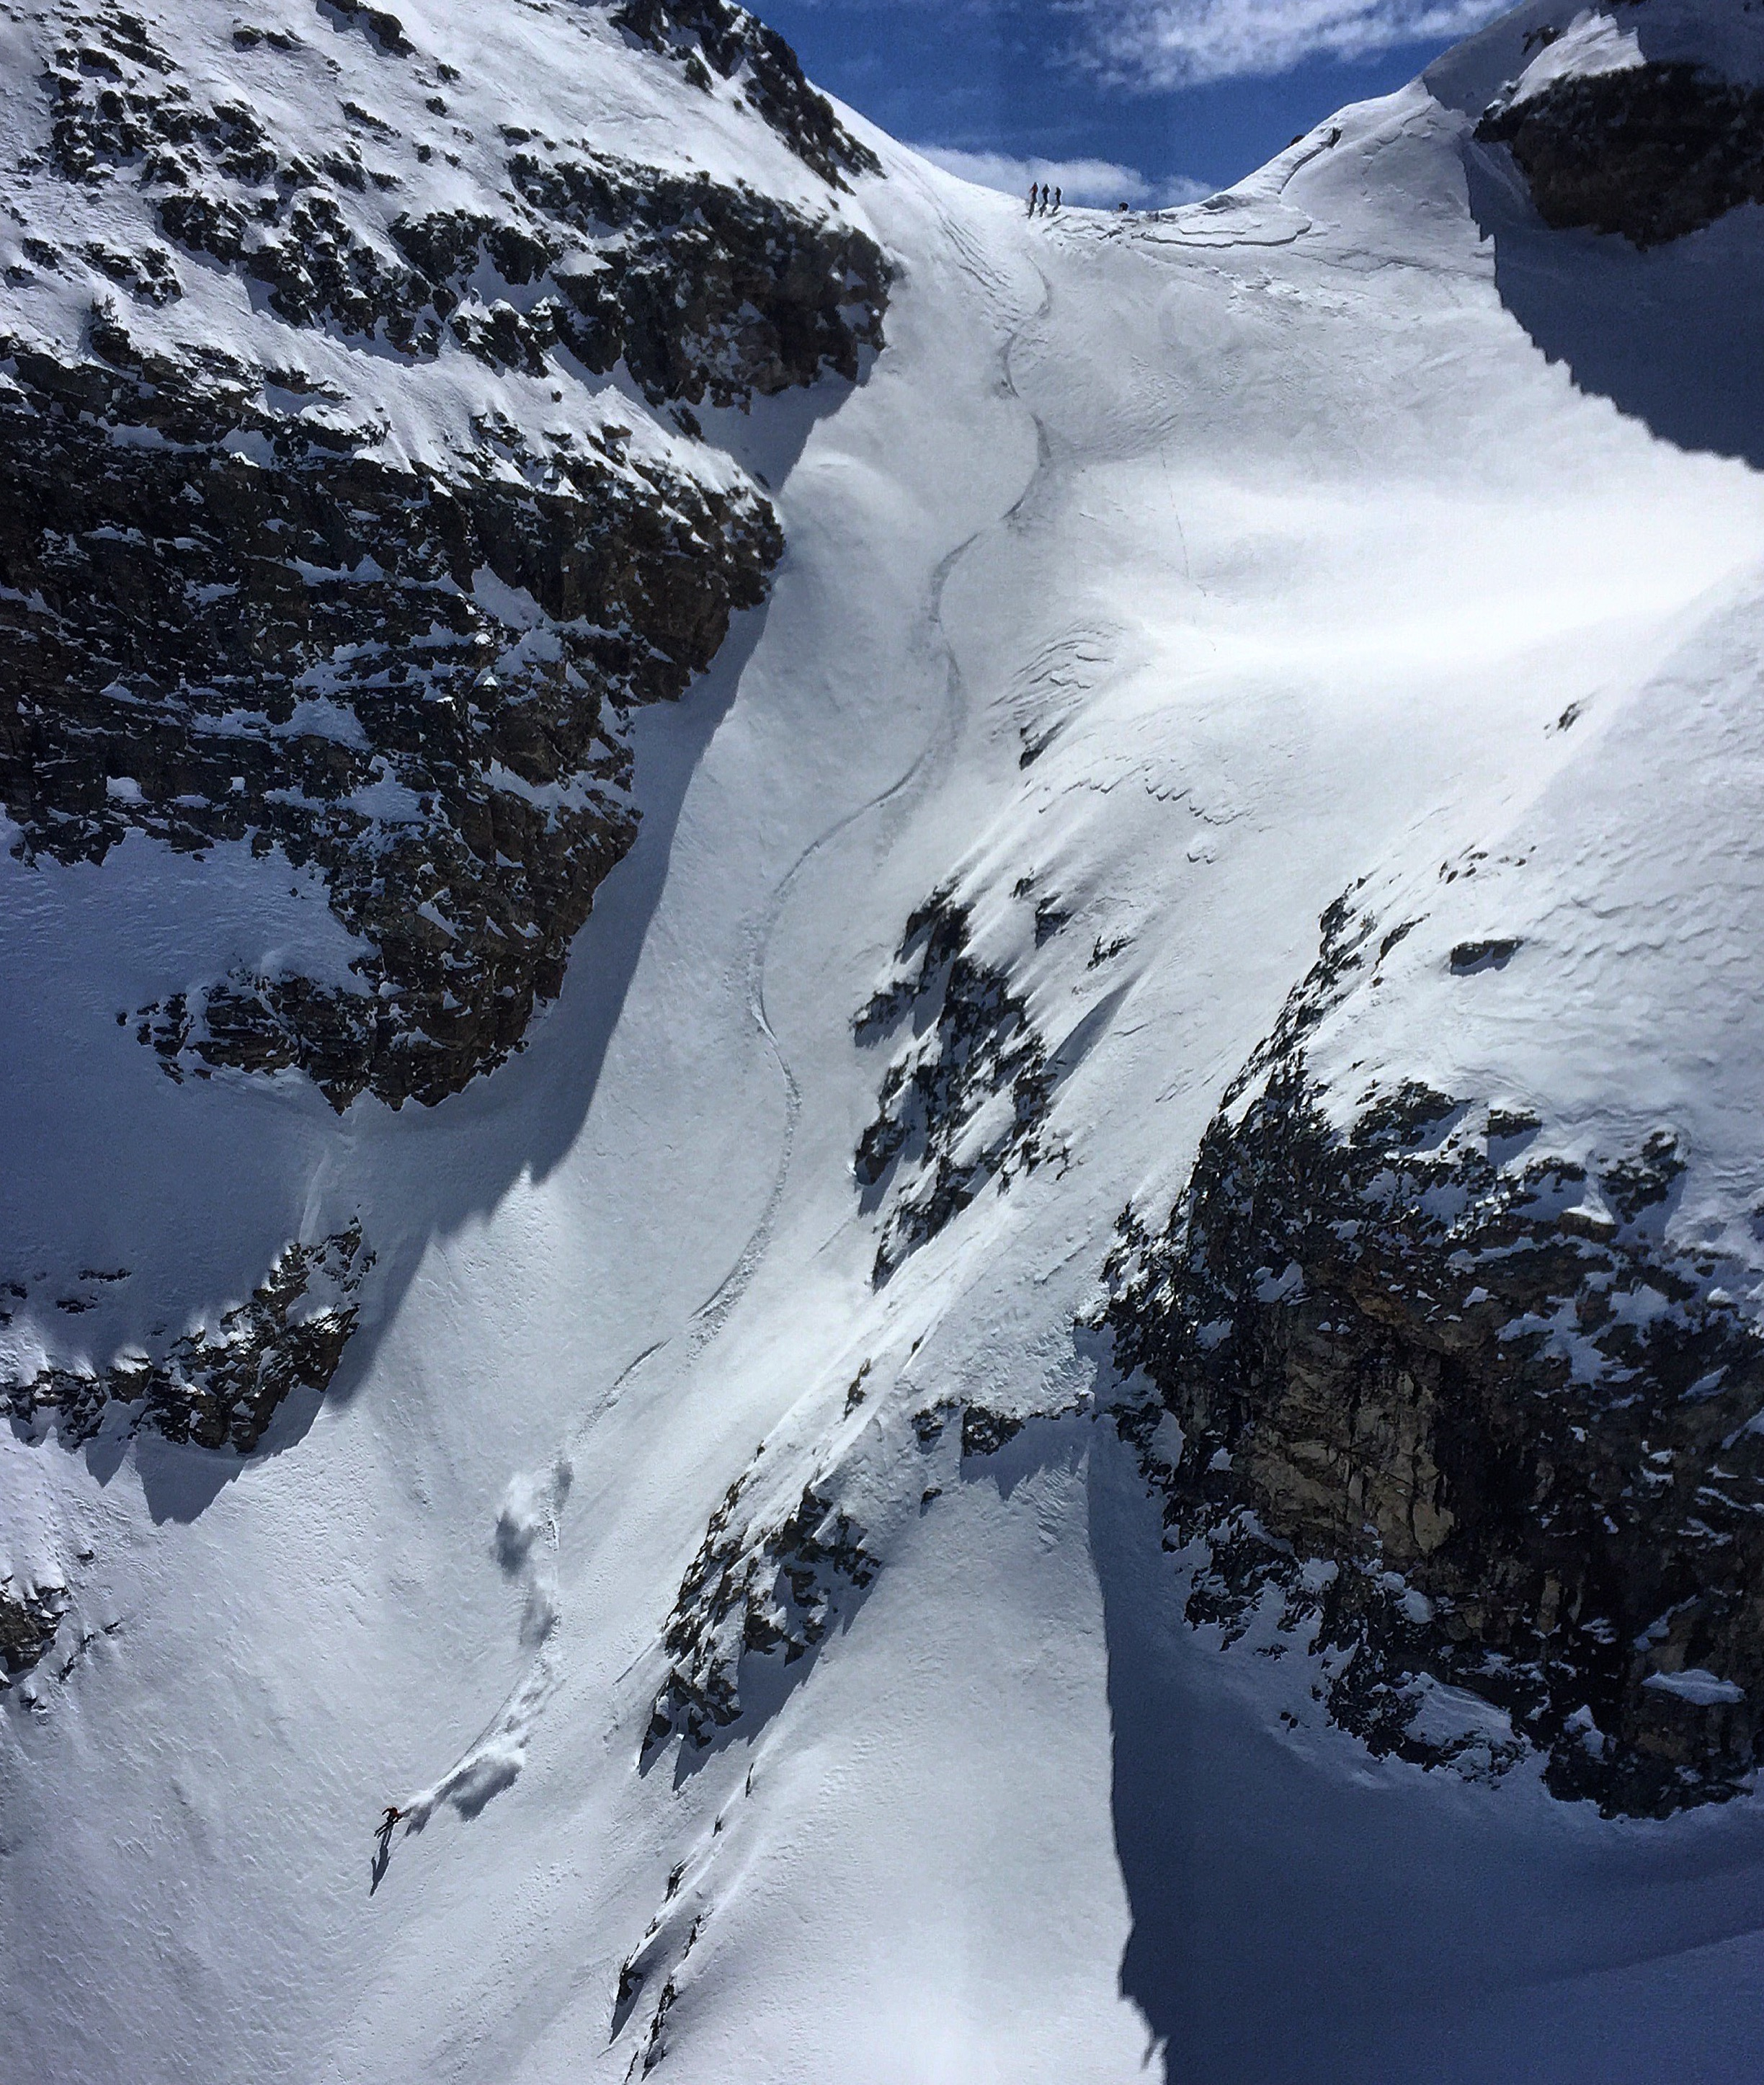 Jonathon Spitzer opening the prize line in the Ruby Mountains, NV